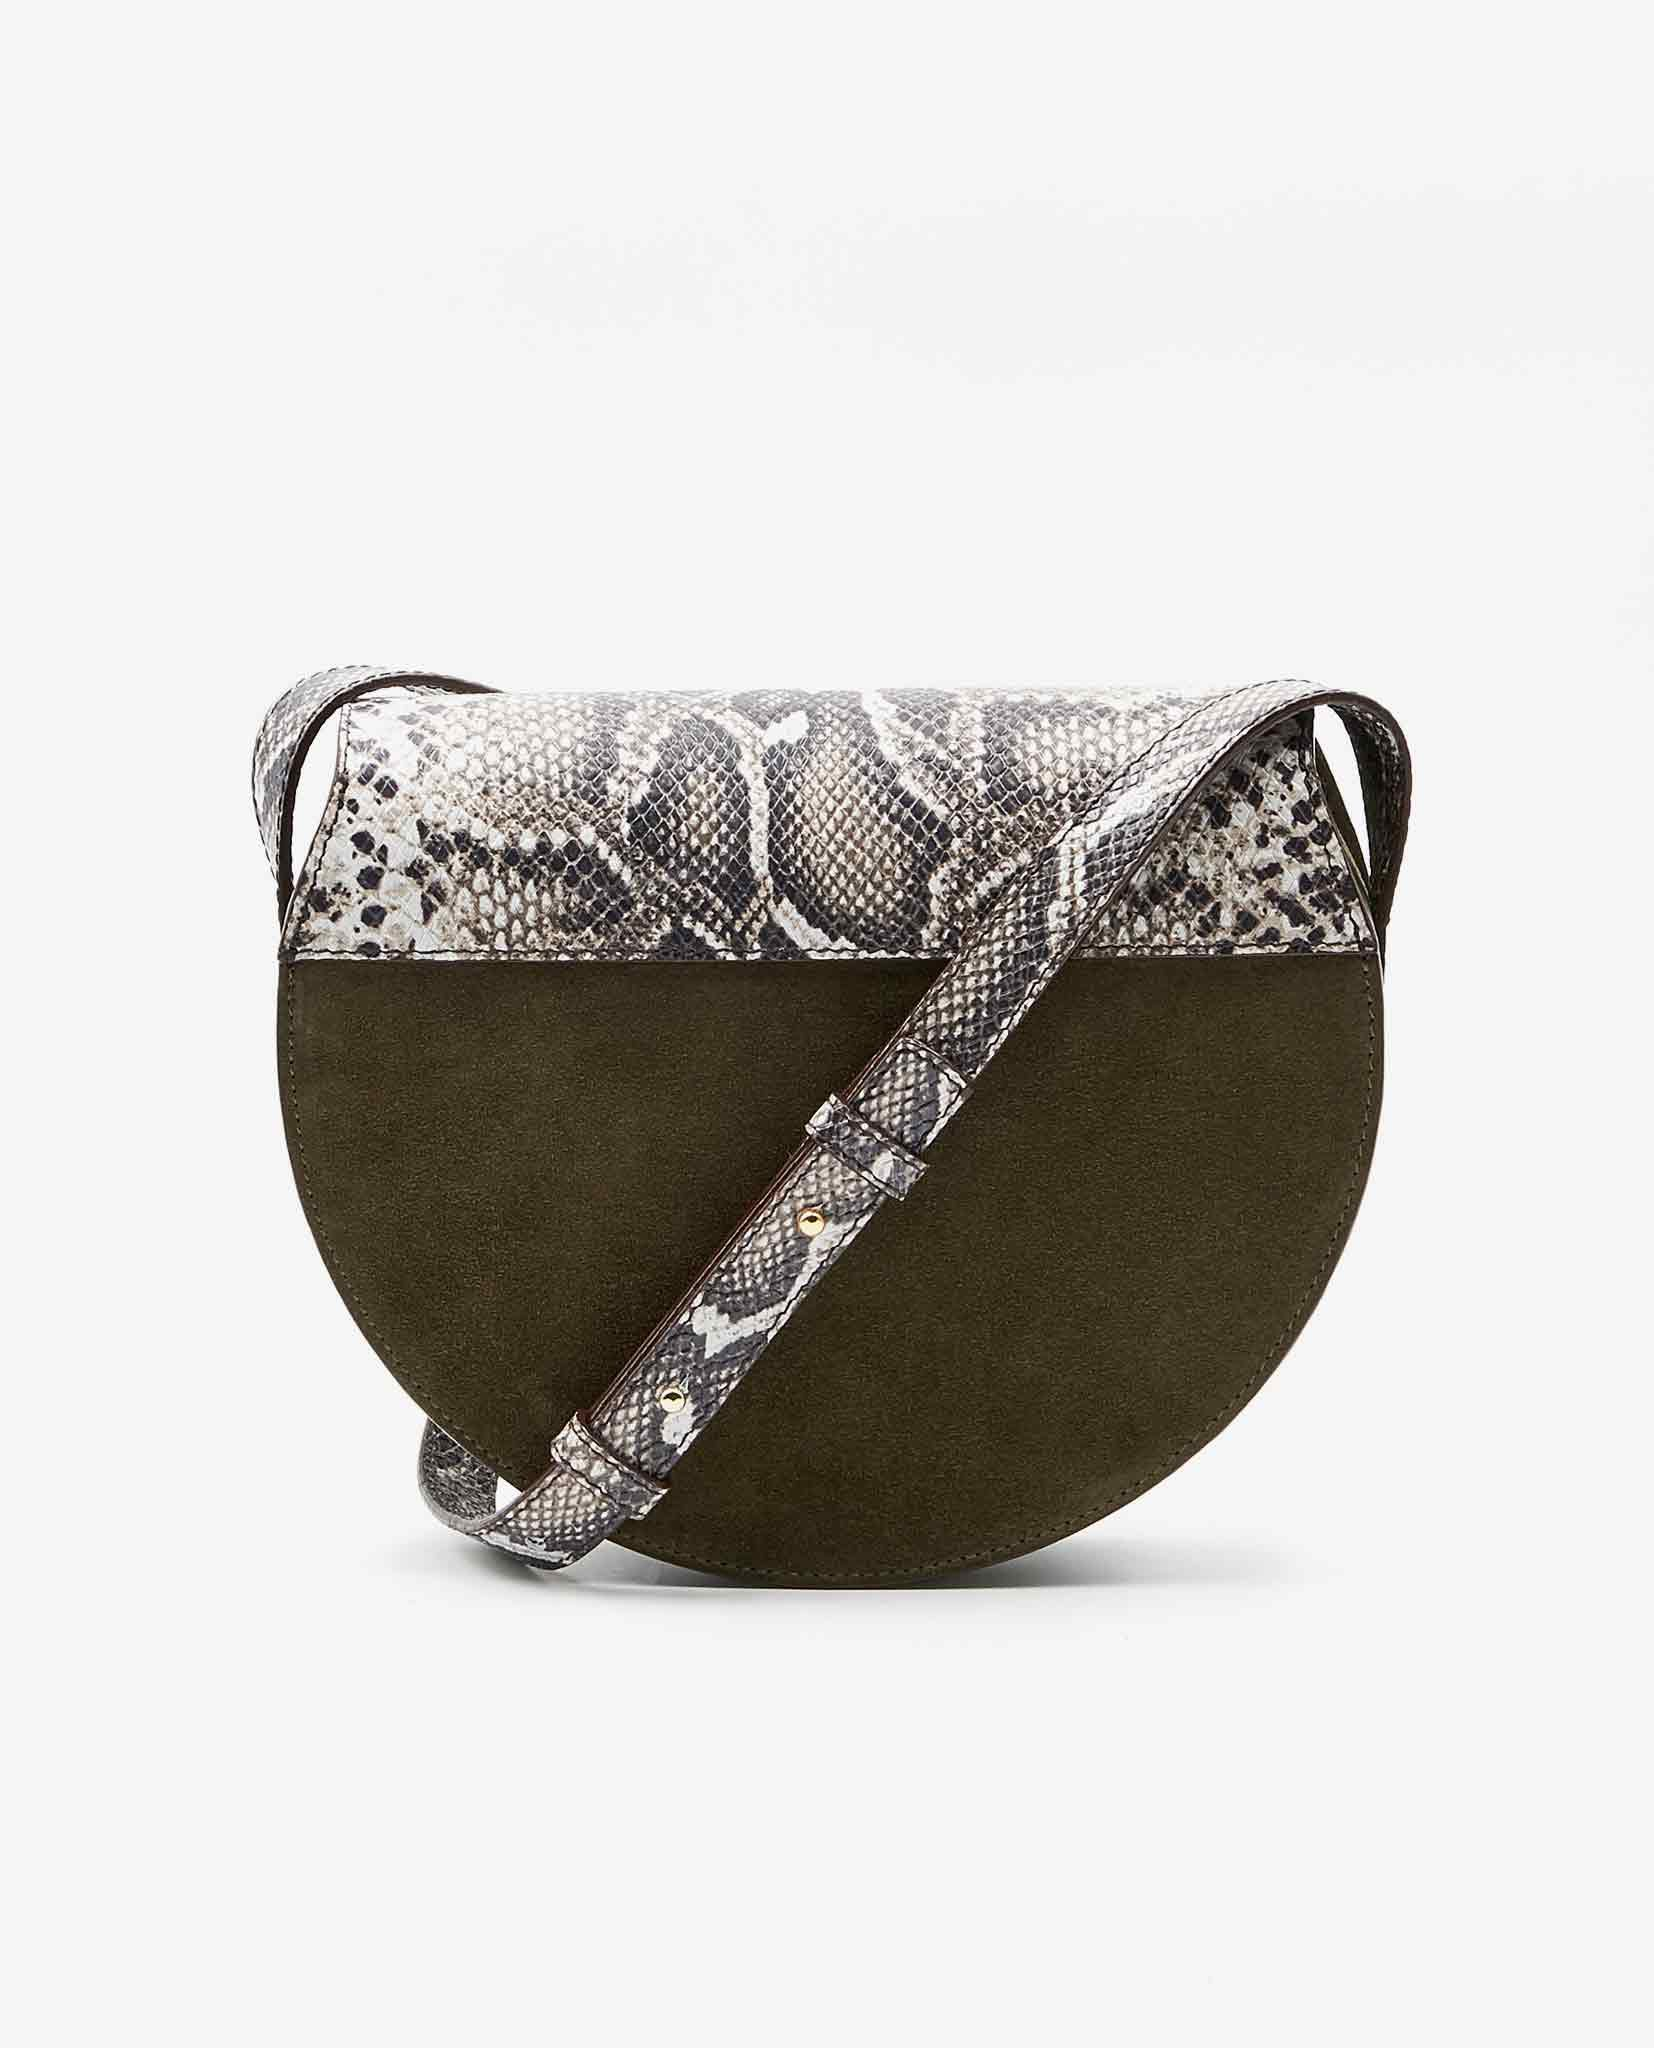 SOOFRE-Berlin-unique-Crossbody-Purse-snake-brown-Khaki-BACK